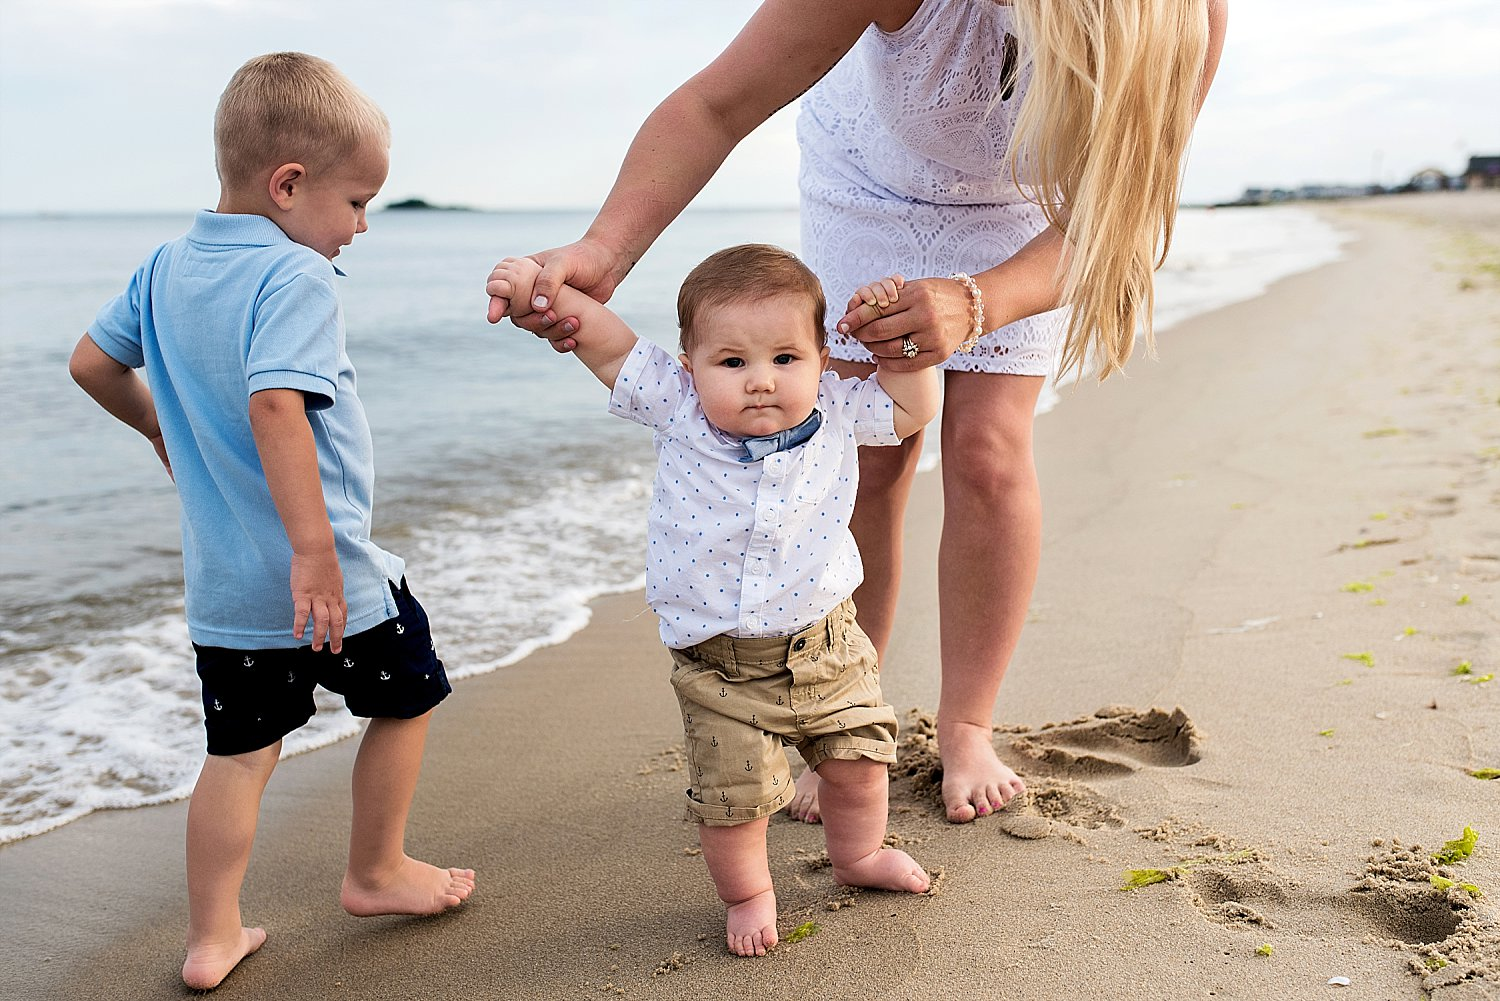 CT baby photographer. Infant boy at the beach with his mom during connecticut family photography.